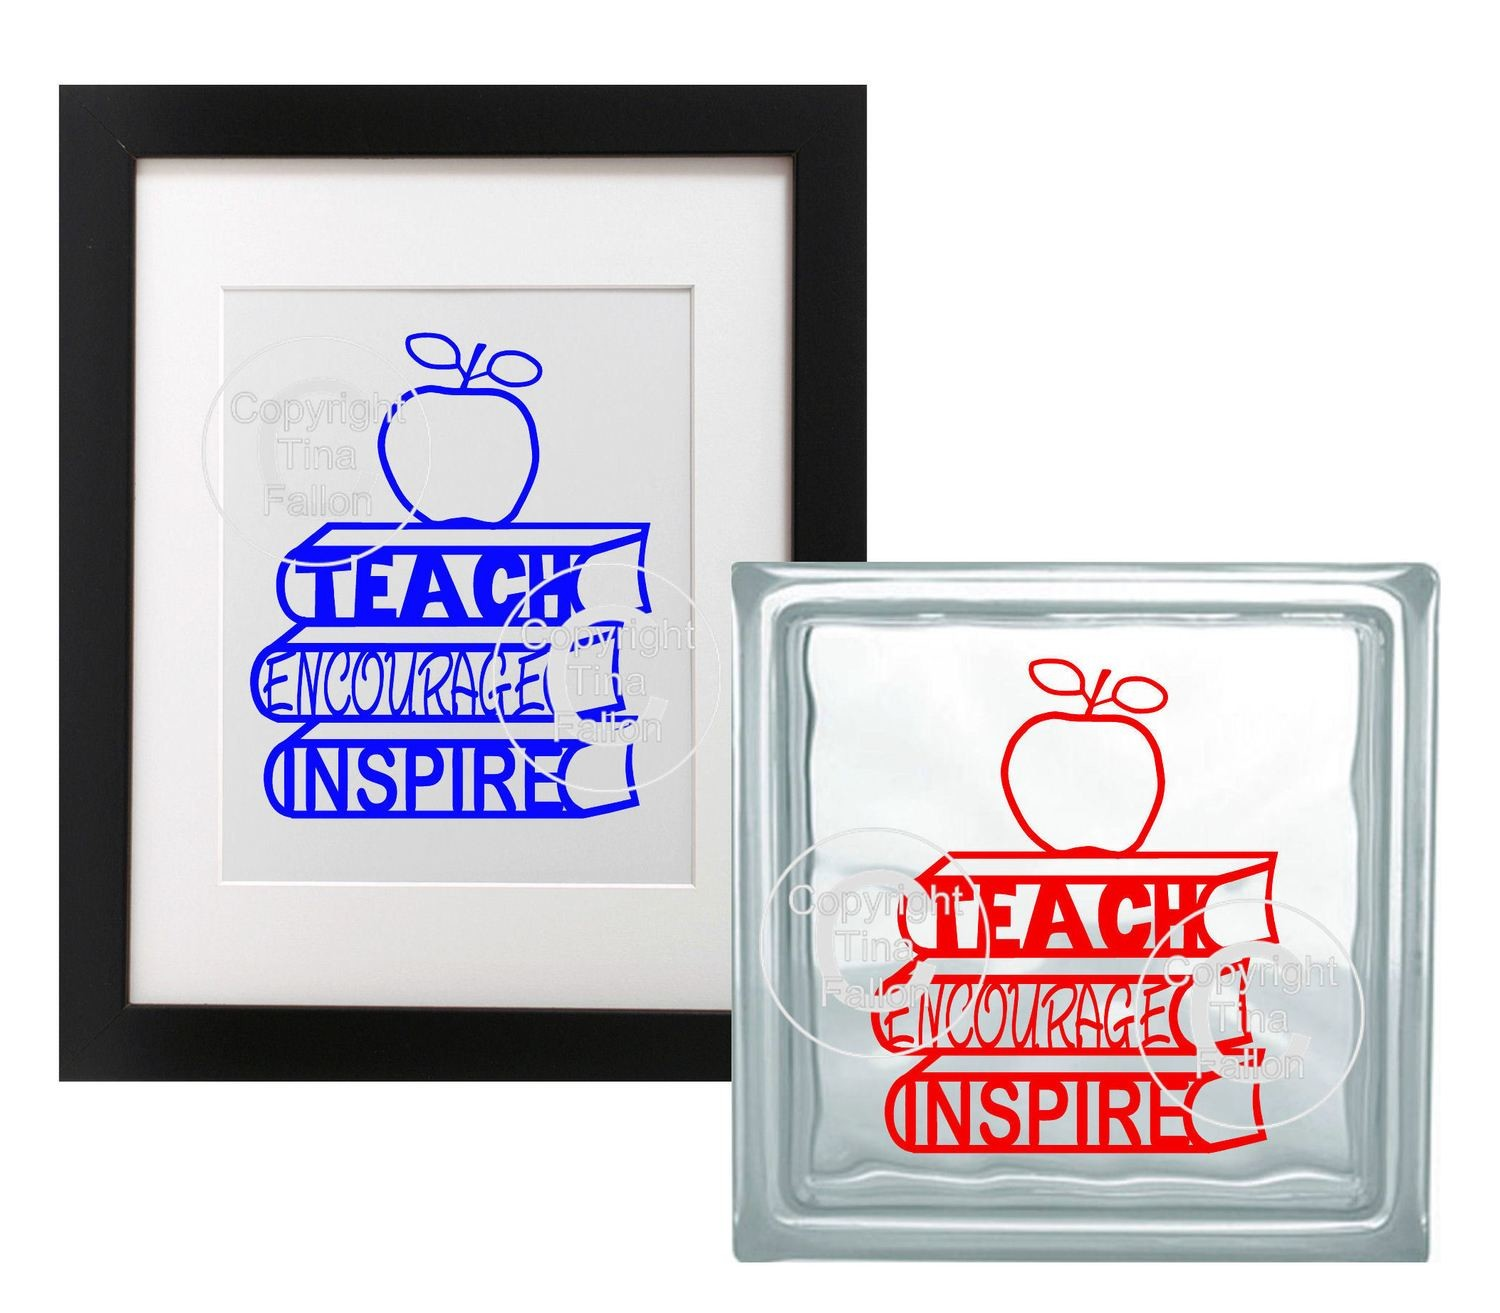 TEACHER - Teach Encourage Inspire